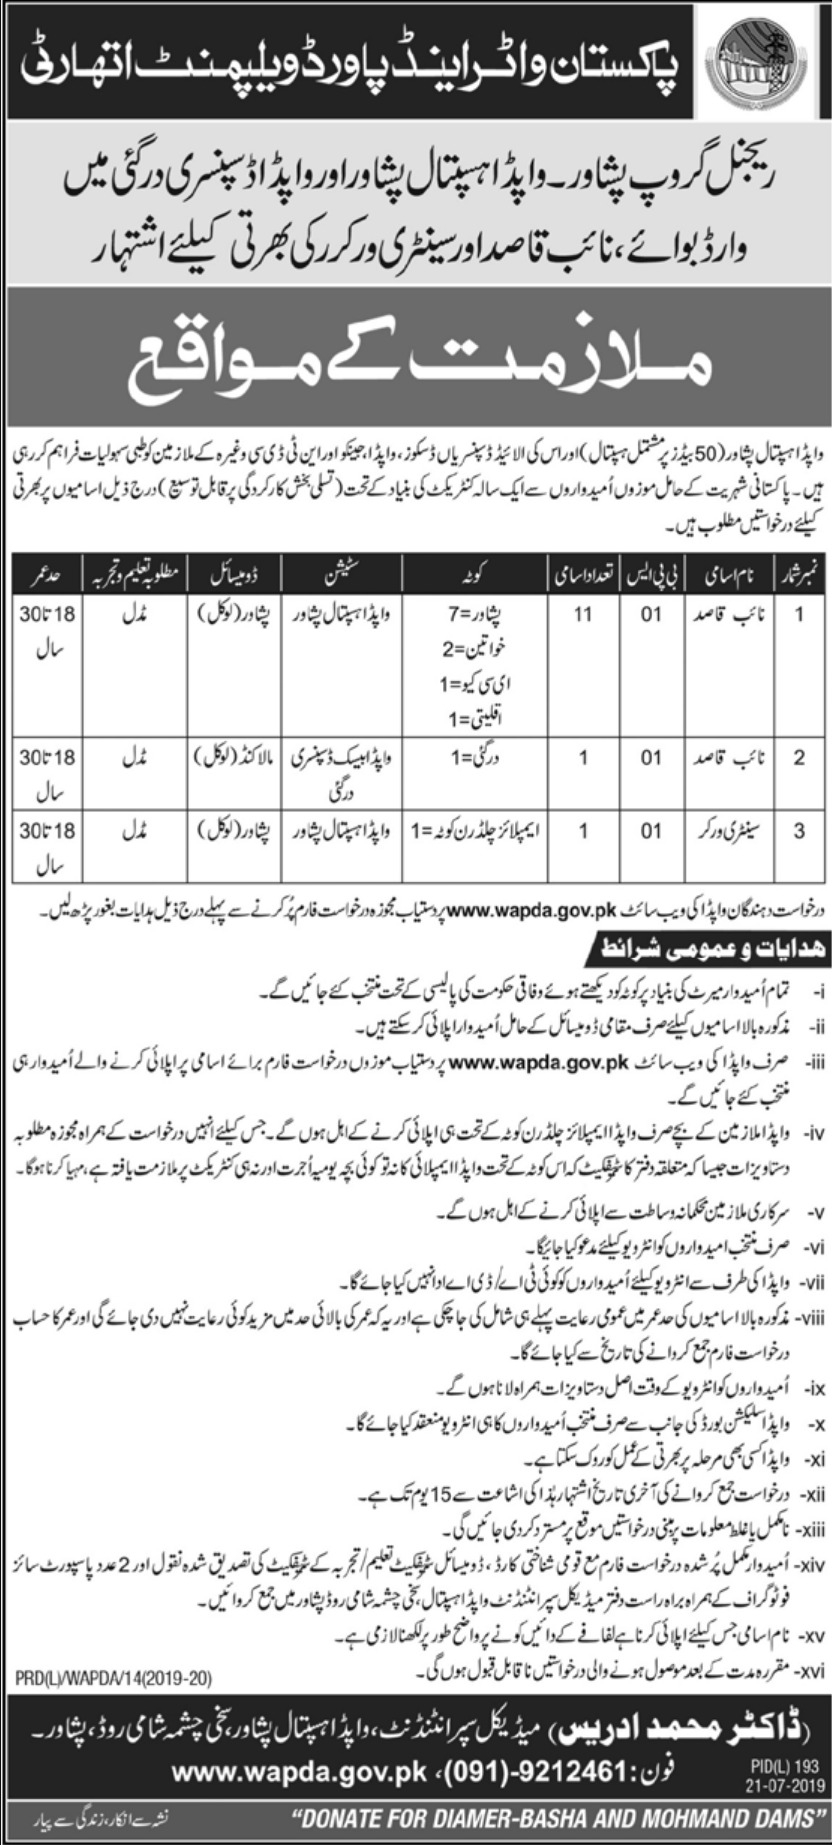 Wapda Hospital Peshawar Jobs 2019 Download Application Form